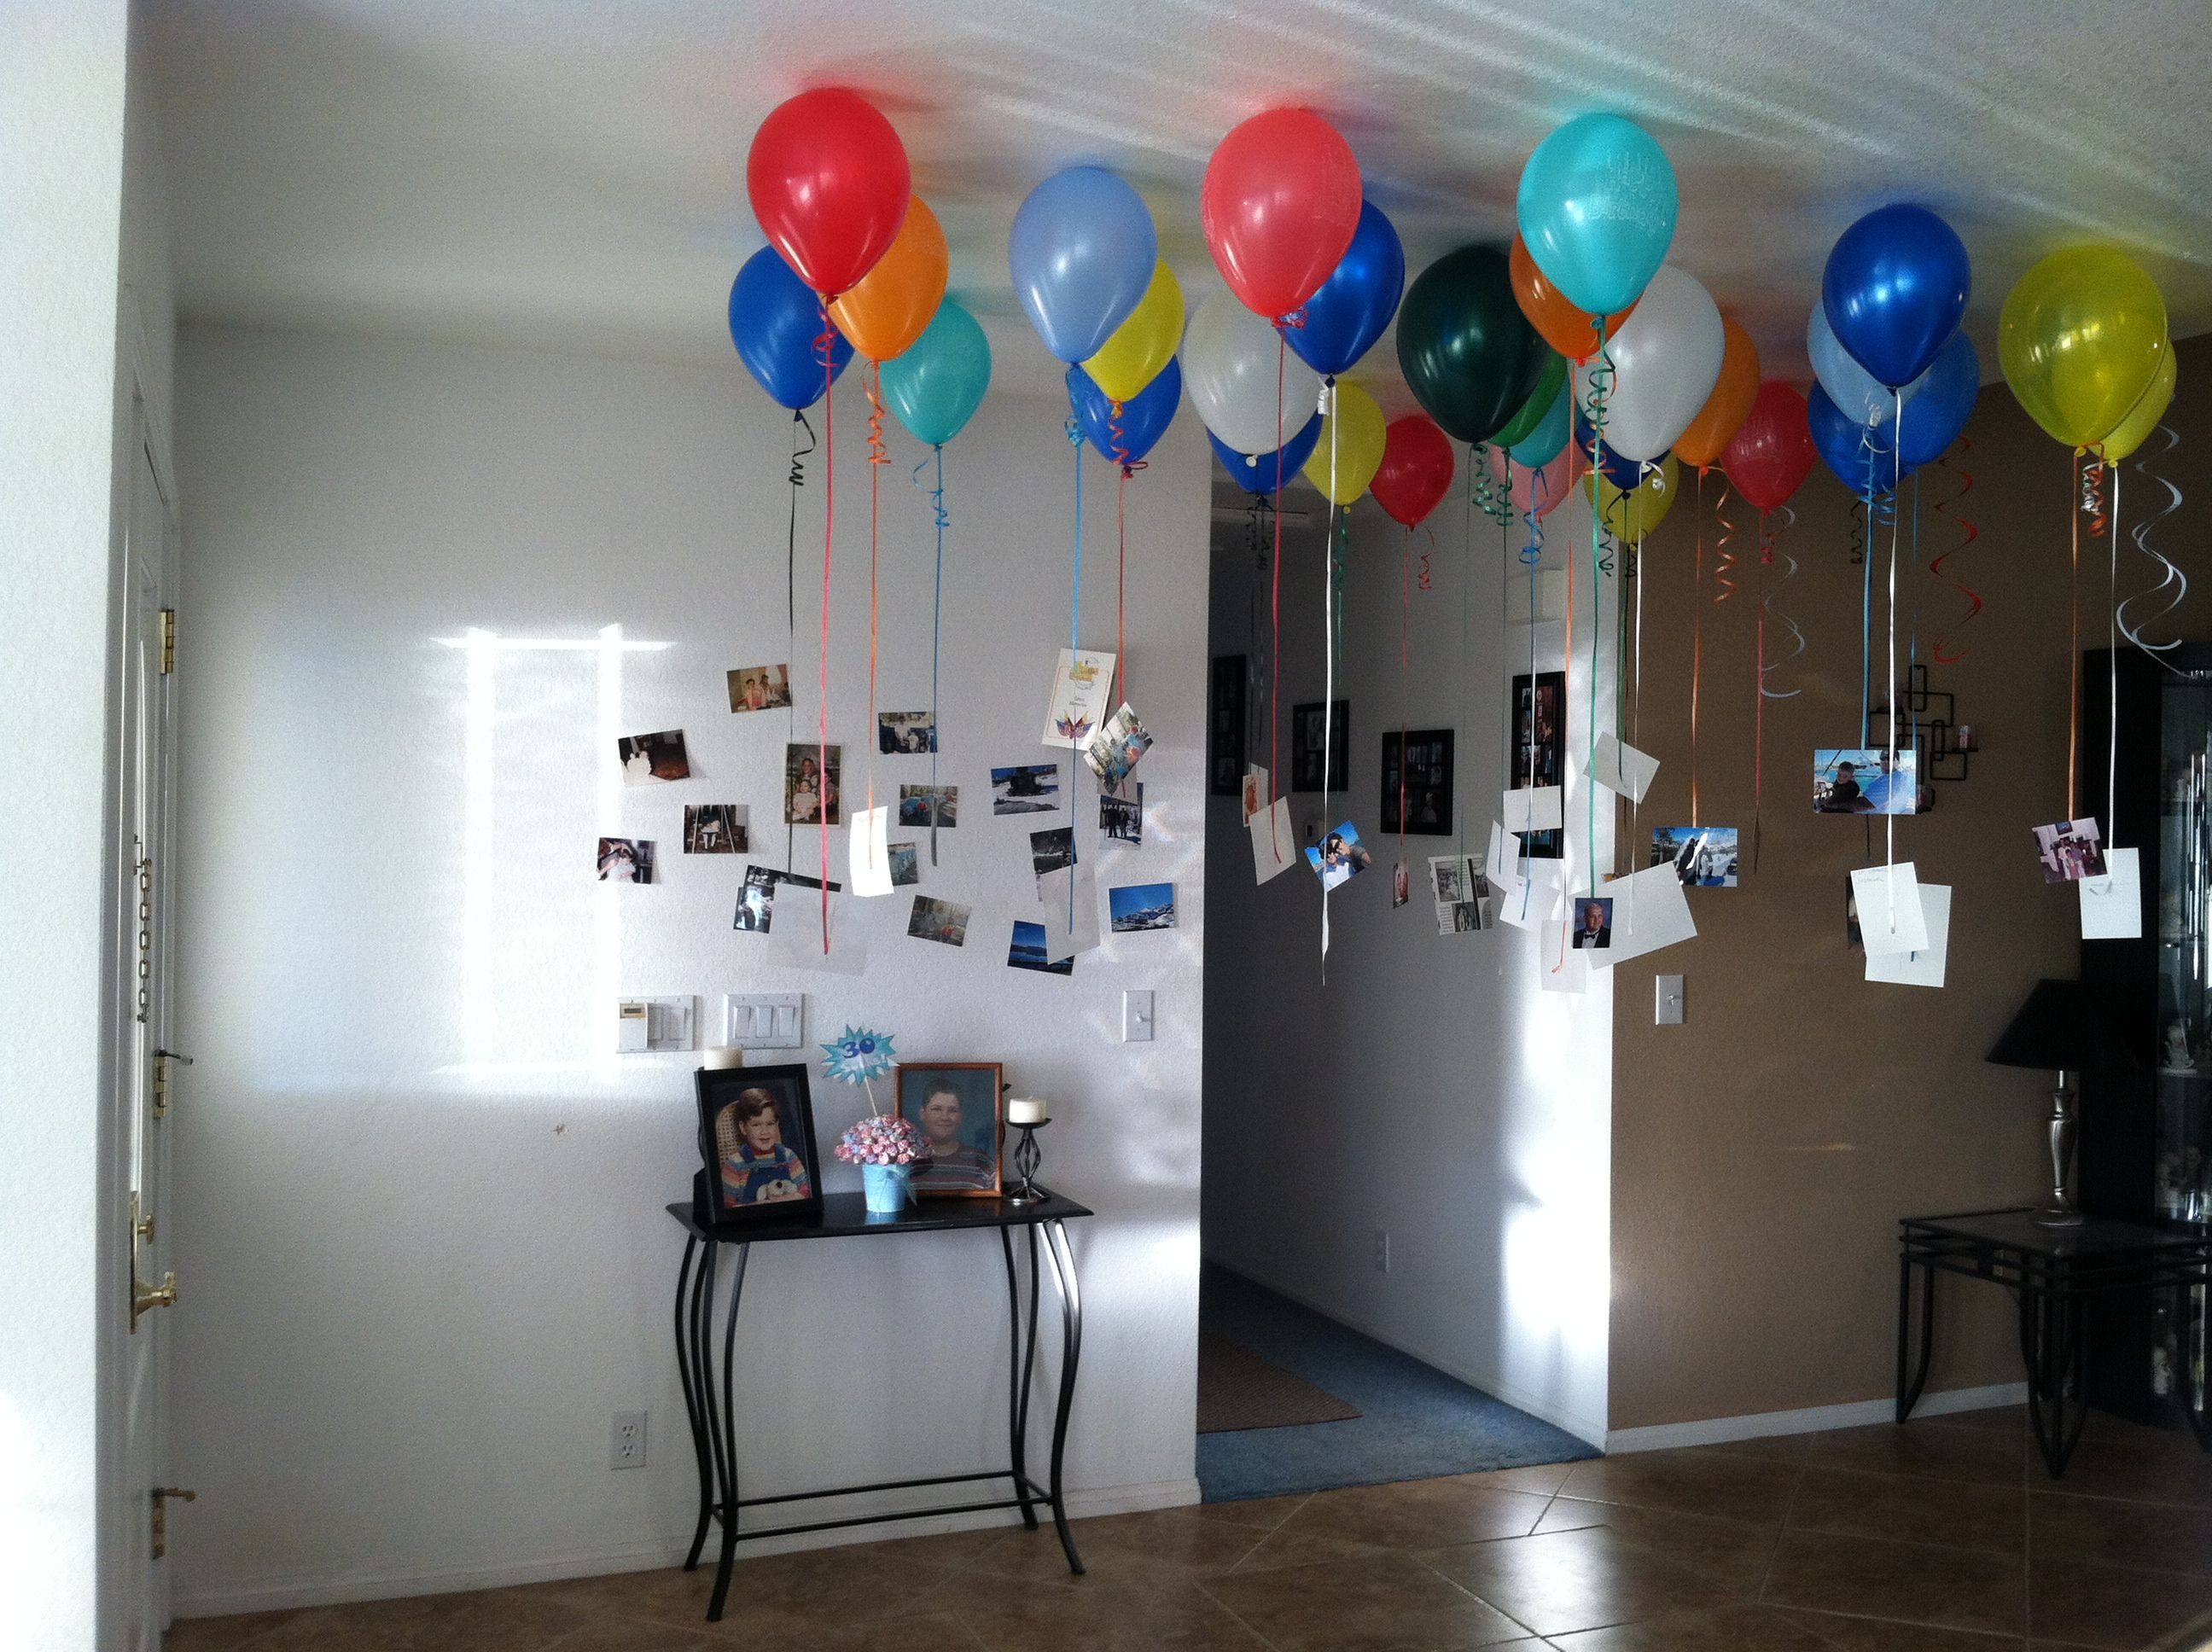 Did This In My Entry Way For Husbands 30th Birthday30 Balloons With Different Pictures Of Him Through The Years Everyone Enjoyed It